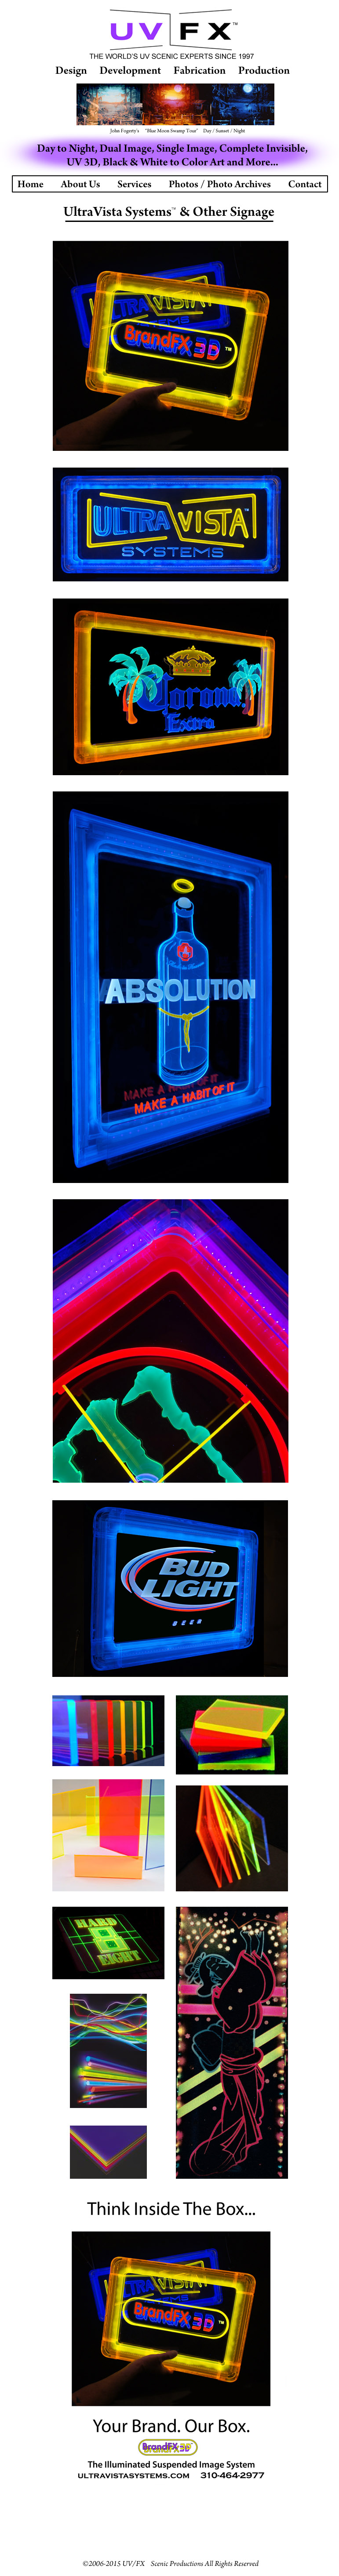 Day to night art, Dual Image art, Complete Invisible art , UV3D art , single Image art , UV art, uv Scenery, Blacklight artwork, fluorescent art, uv murals, touring scenery, transforming art and murals, blacklight art, black light murals